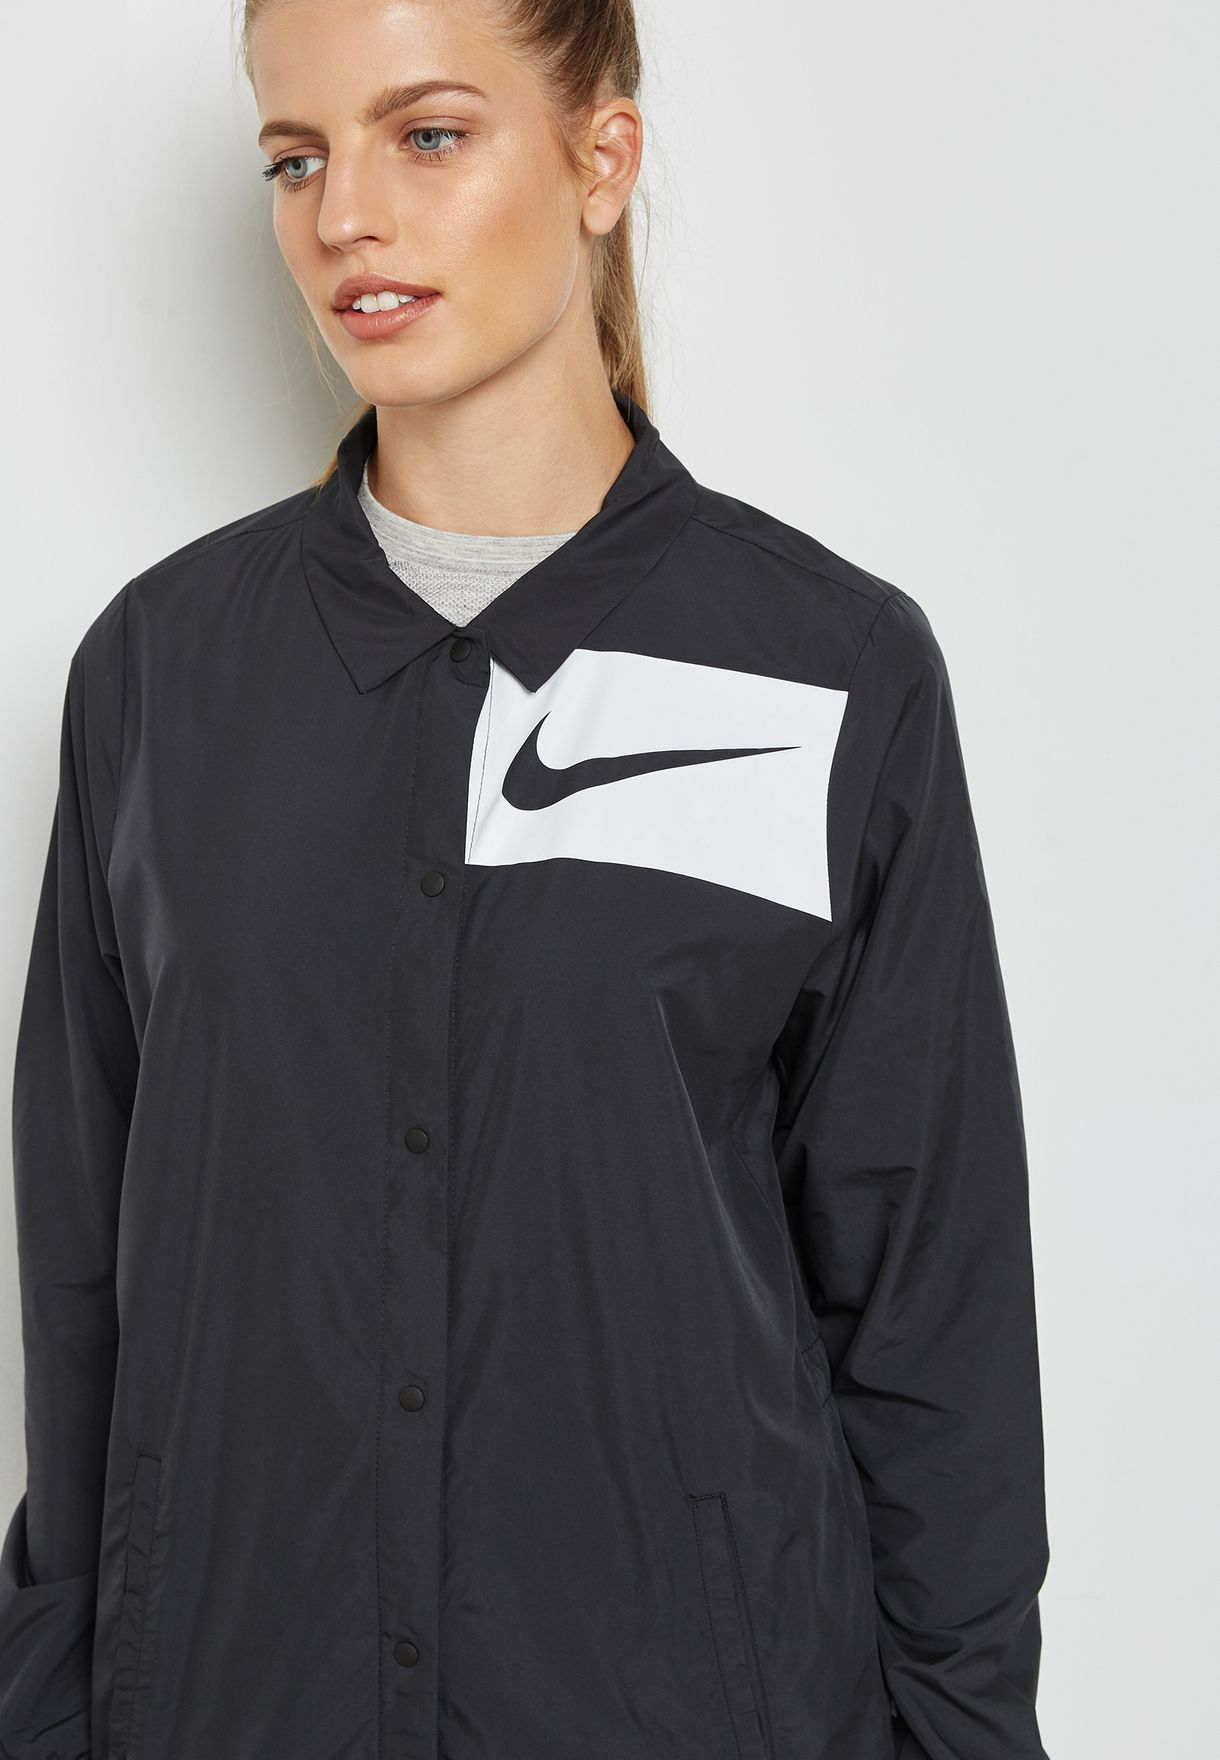 c61b4b7fe2 Shop Nike black Swoosh Jacket 893029-010 for Women in Bahrain ...